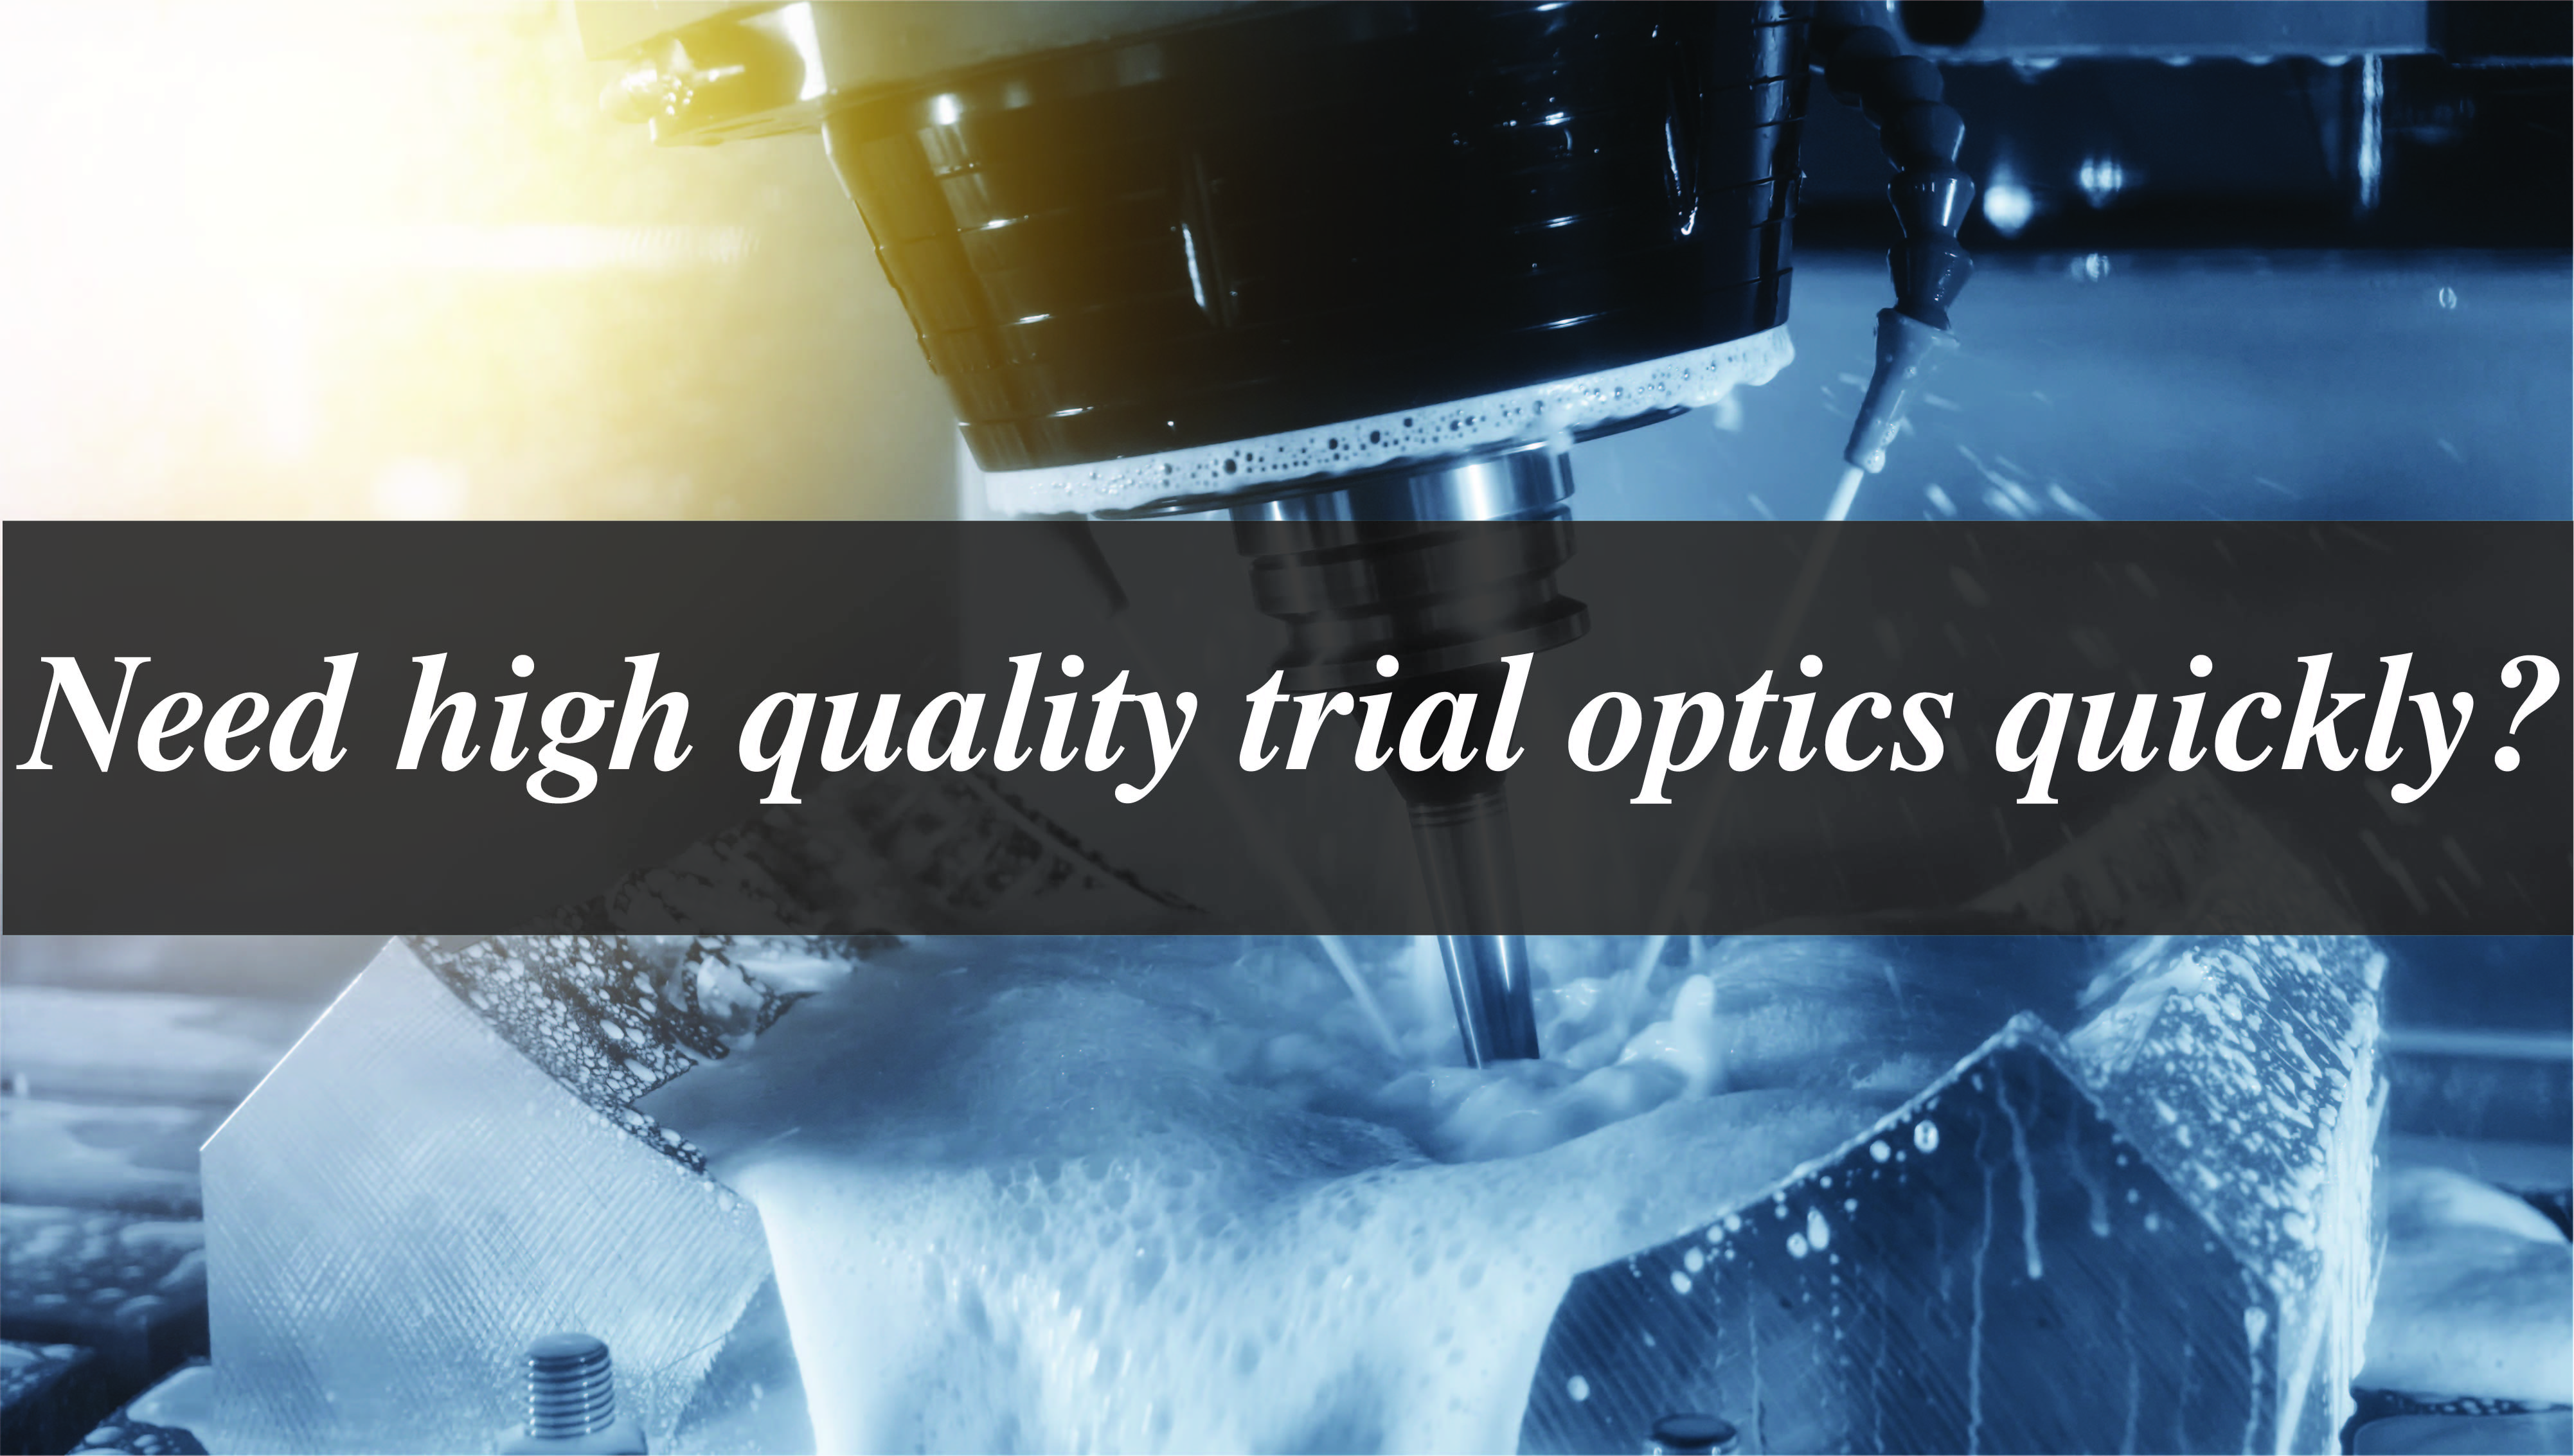 Need high quality trial optics quickly?